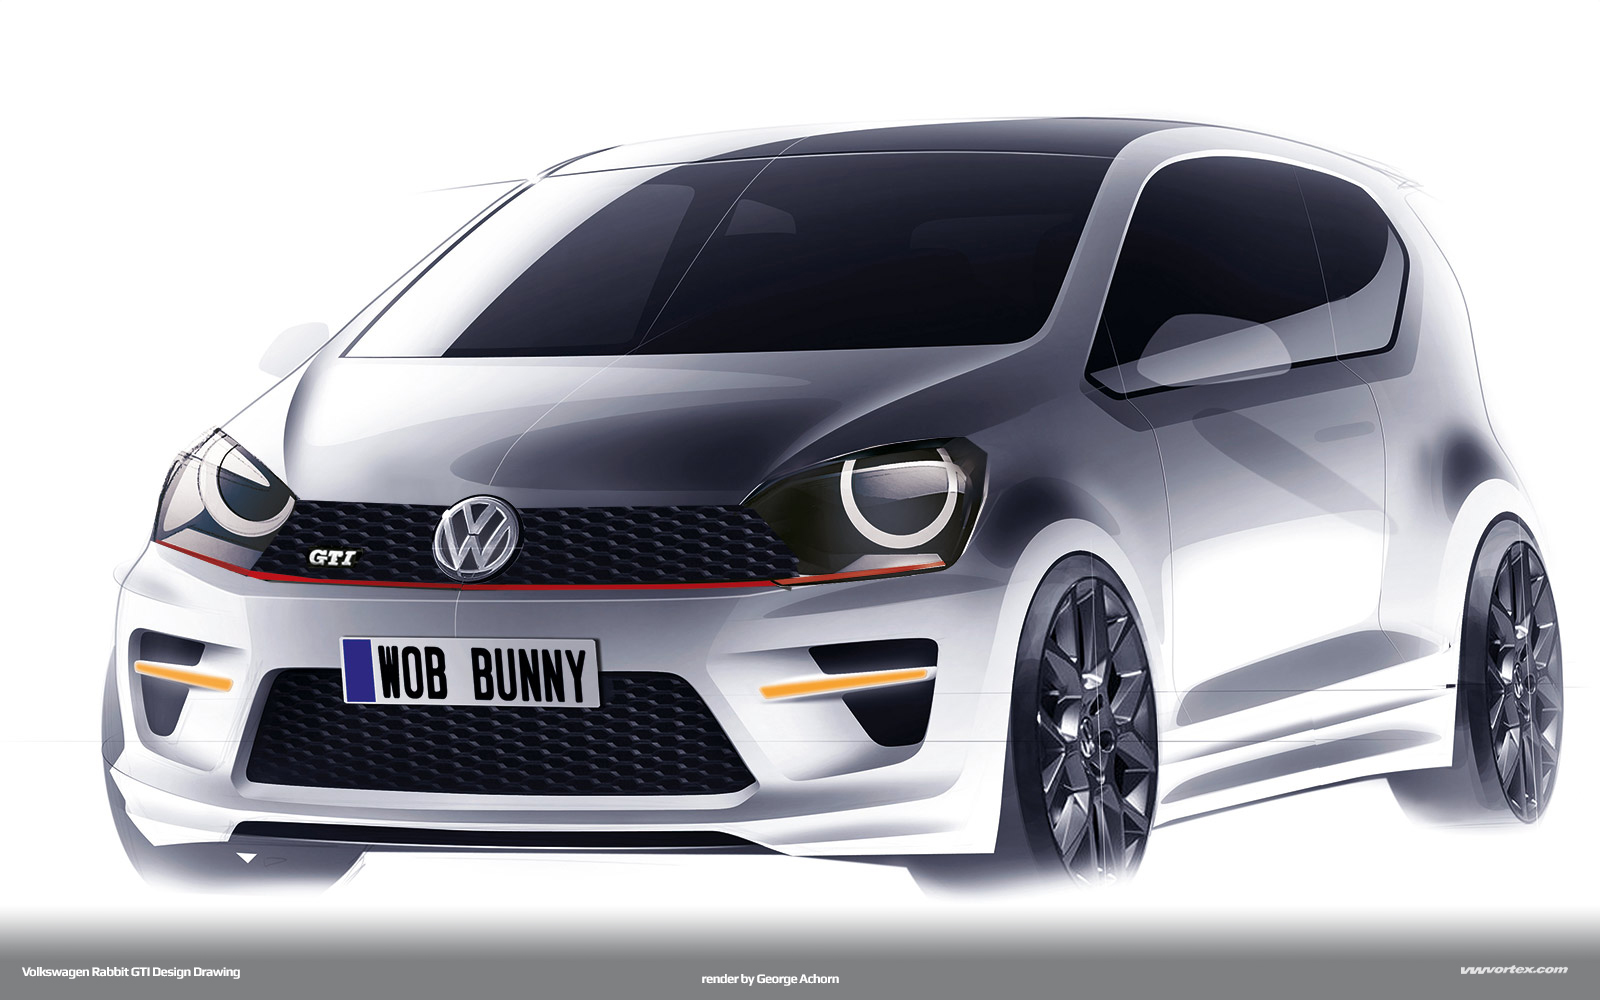 Rabbit GTI Proposal (render by VWVortex)